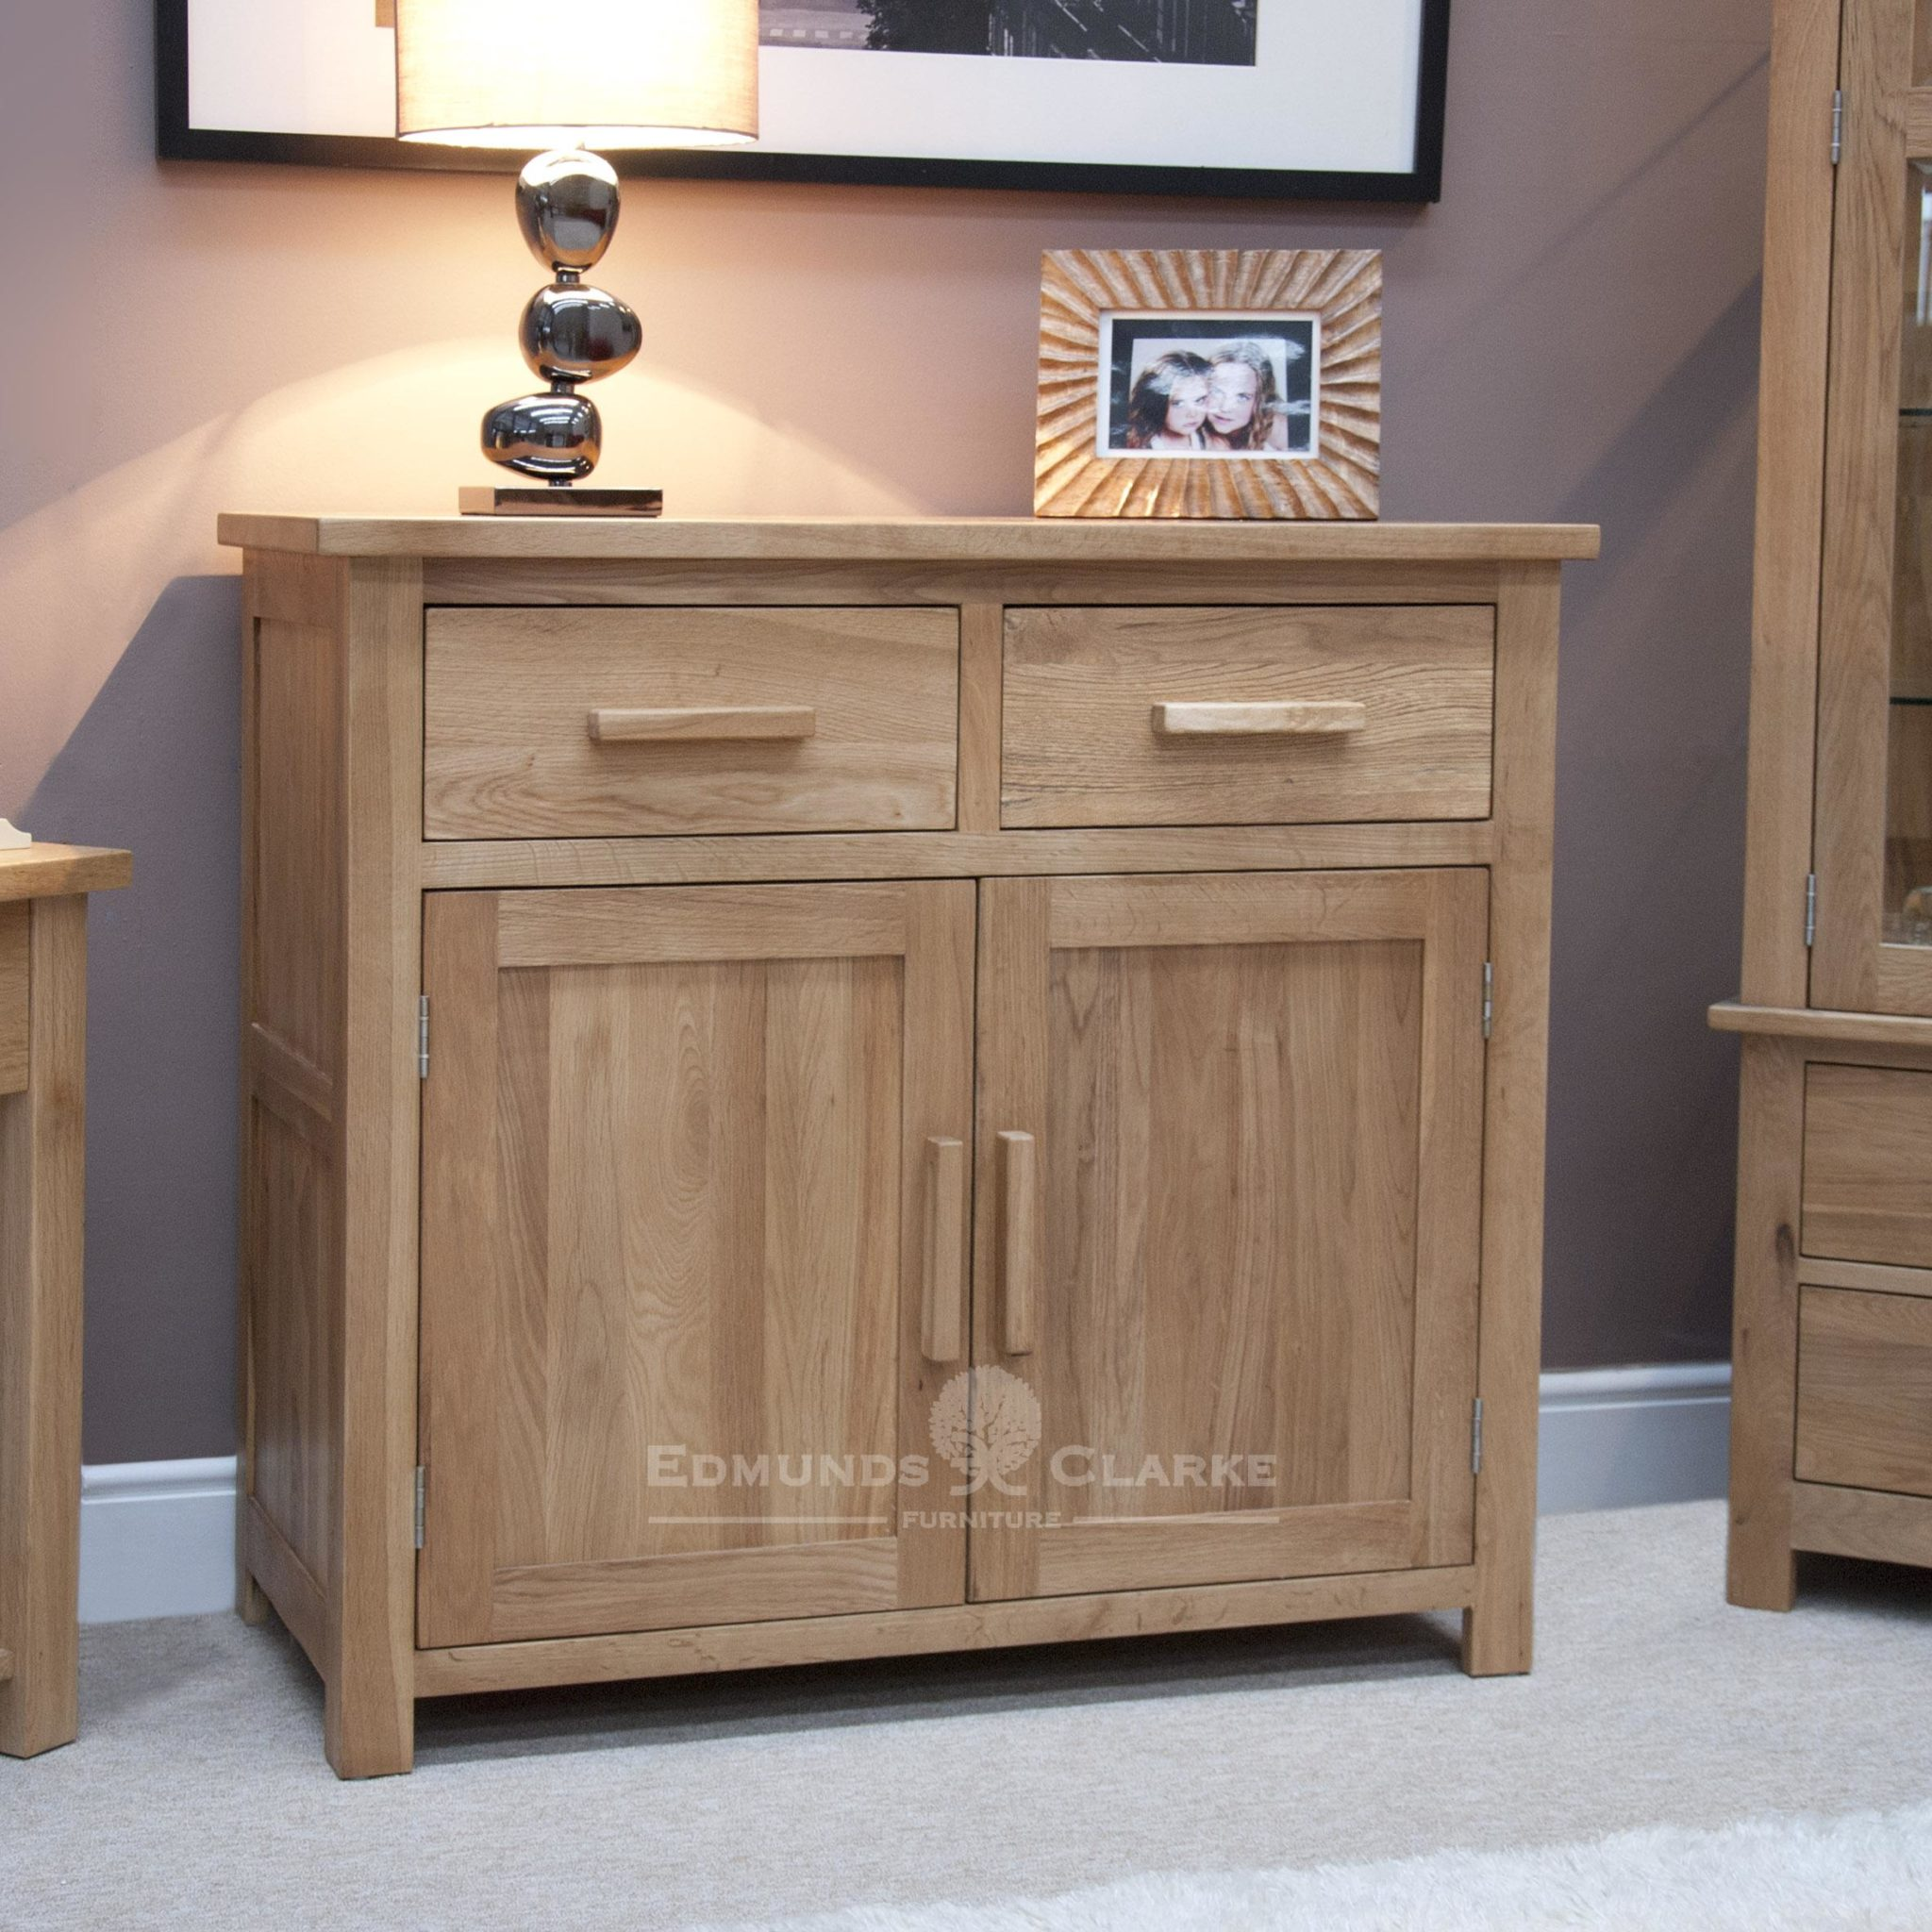 Bury Small oak Sideboard, two drawers and two cupboards underneath, chrome handles as standard oak bar handles available for extra cost. adjustable shelf